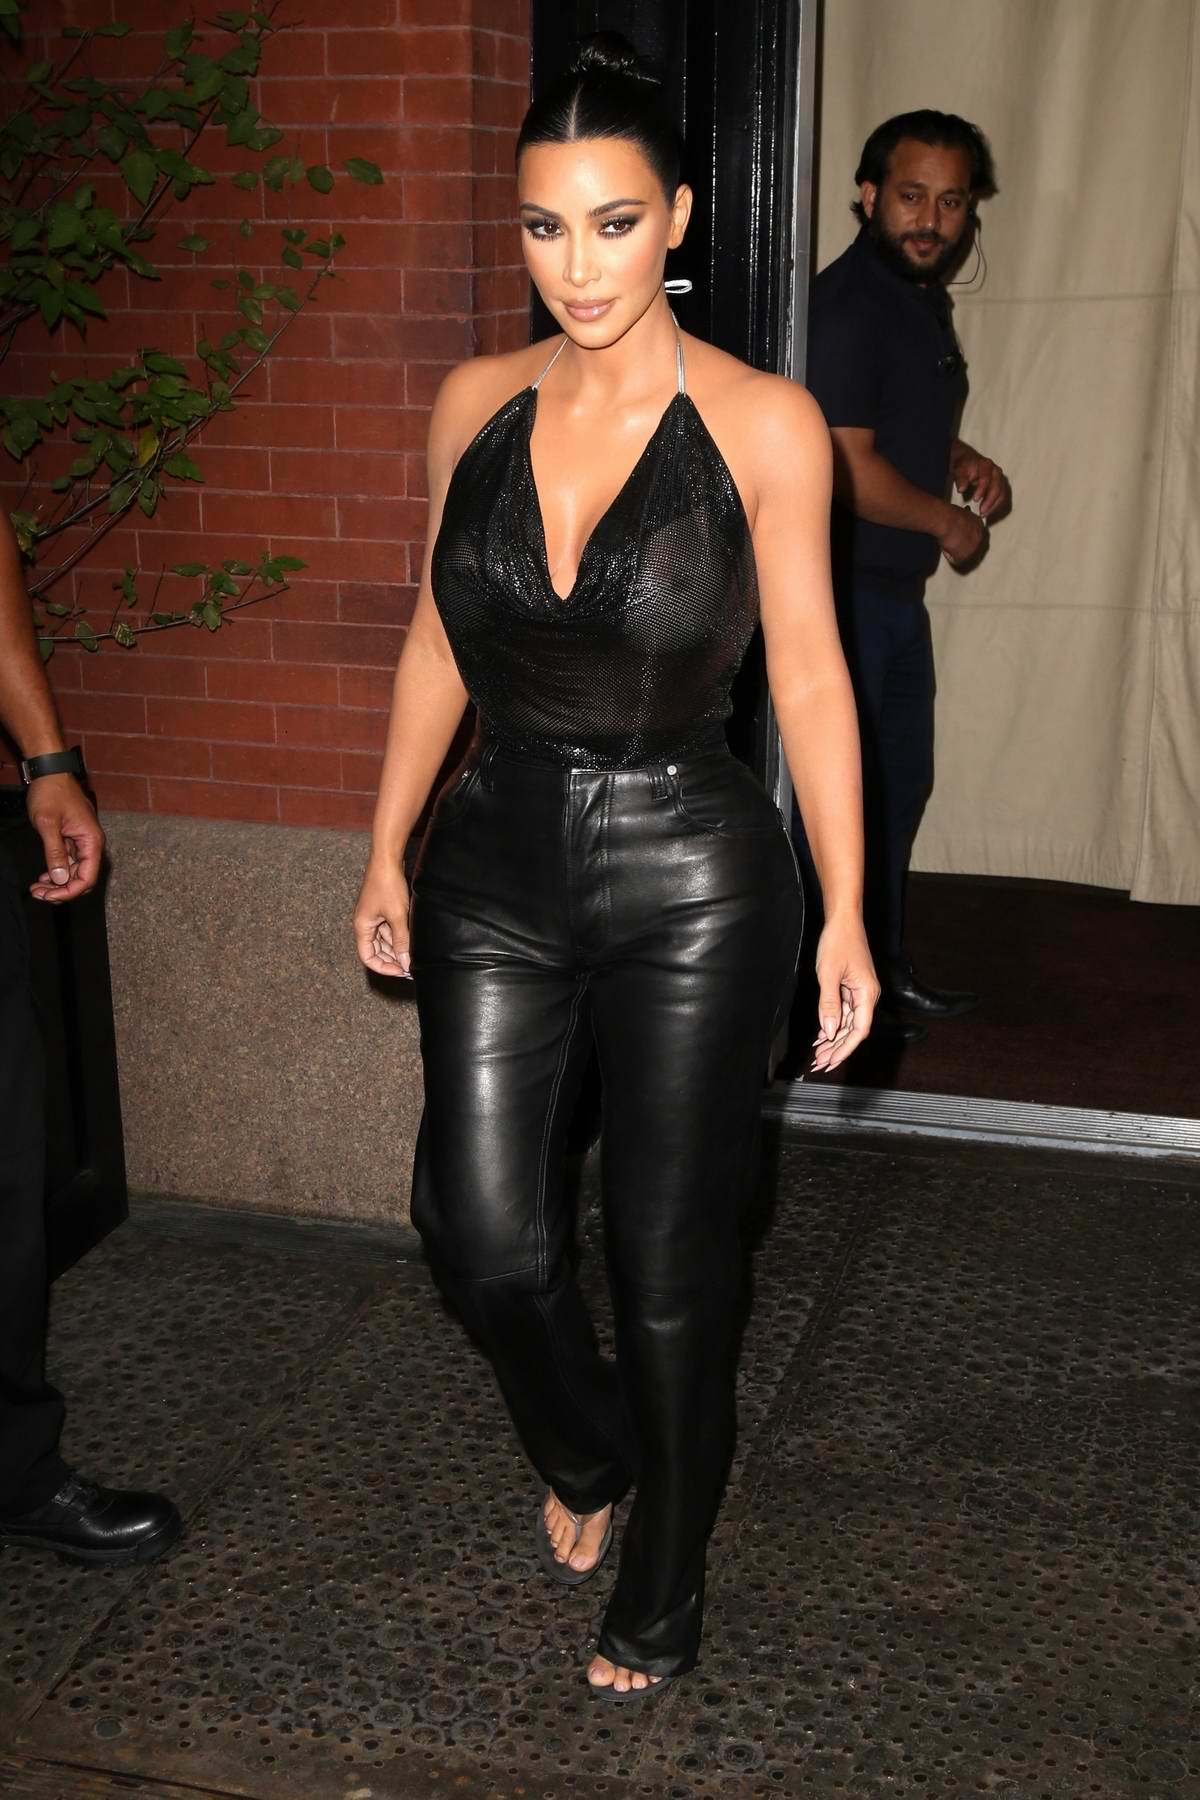 Kim Kardashian rocks a sheer top and black leather pants as she heads to the 'Tonight Show with Jimmy Fallon' in New York City